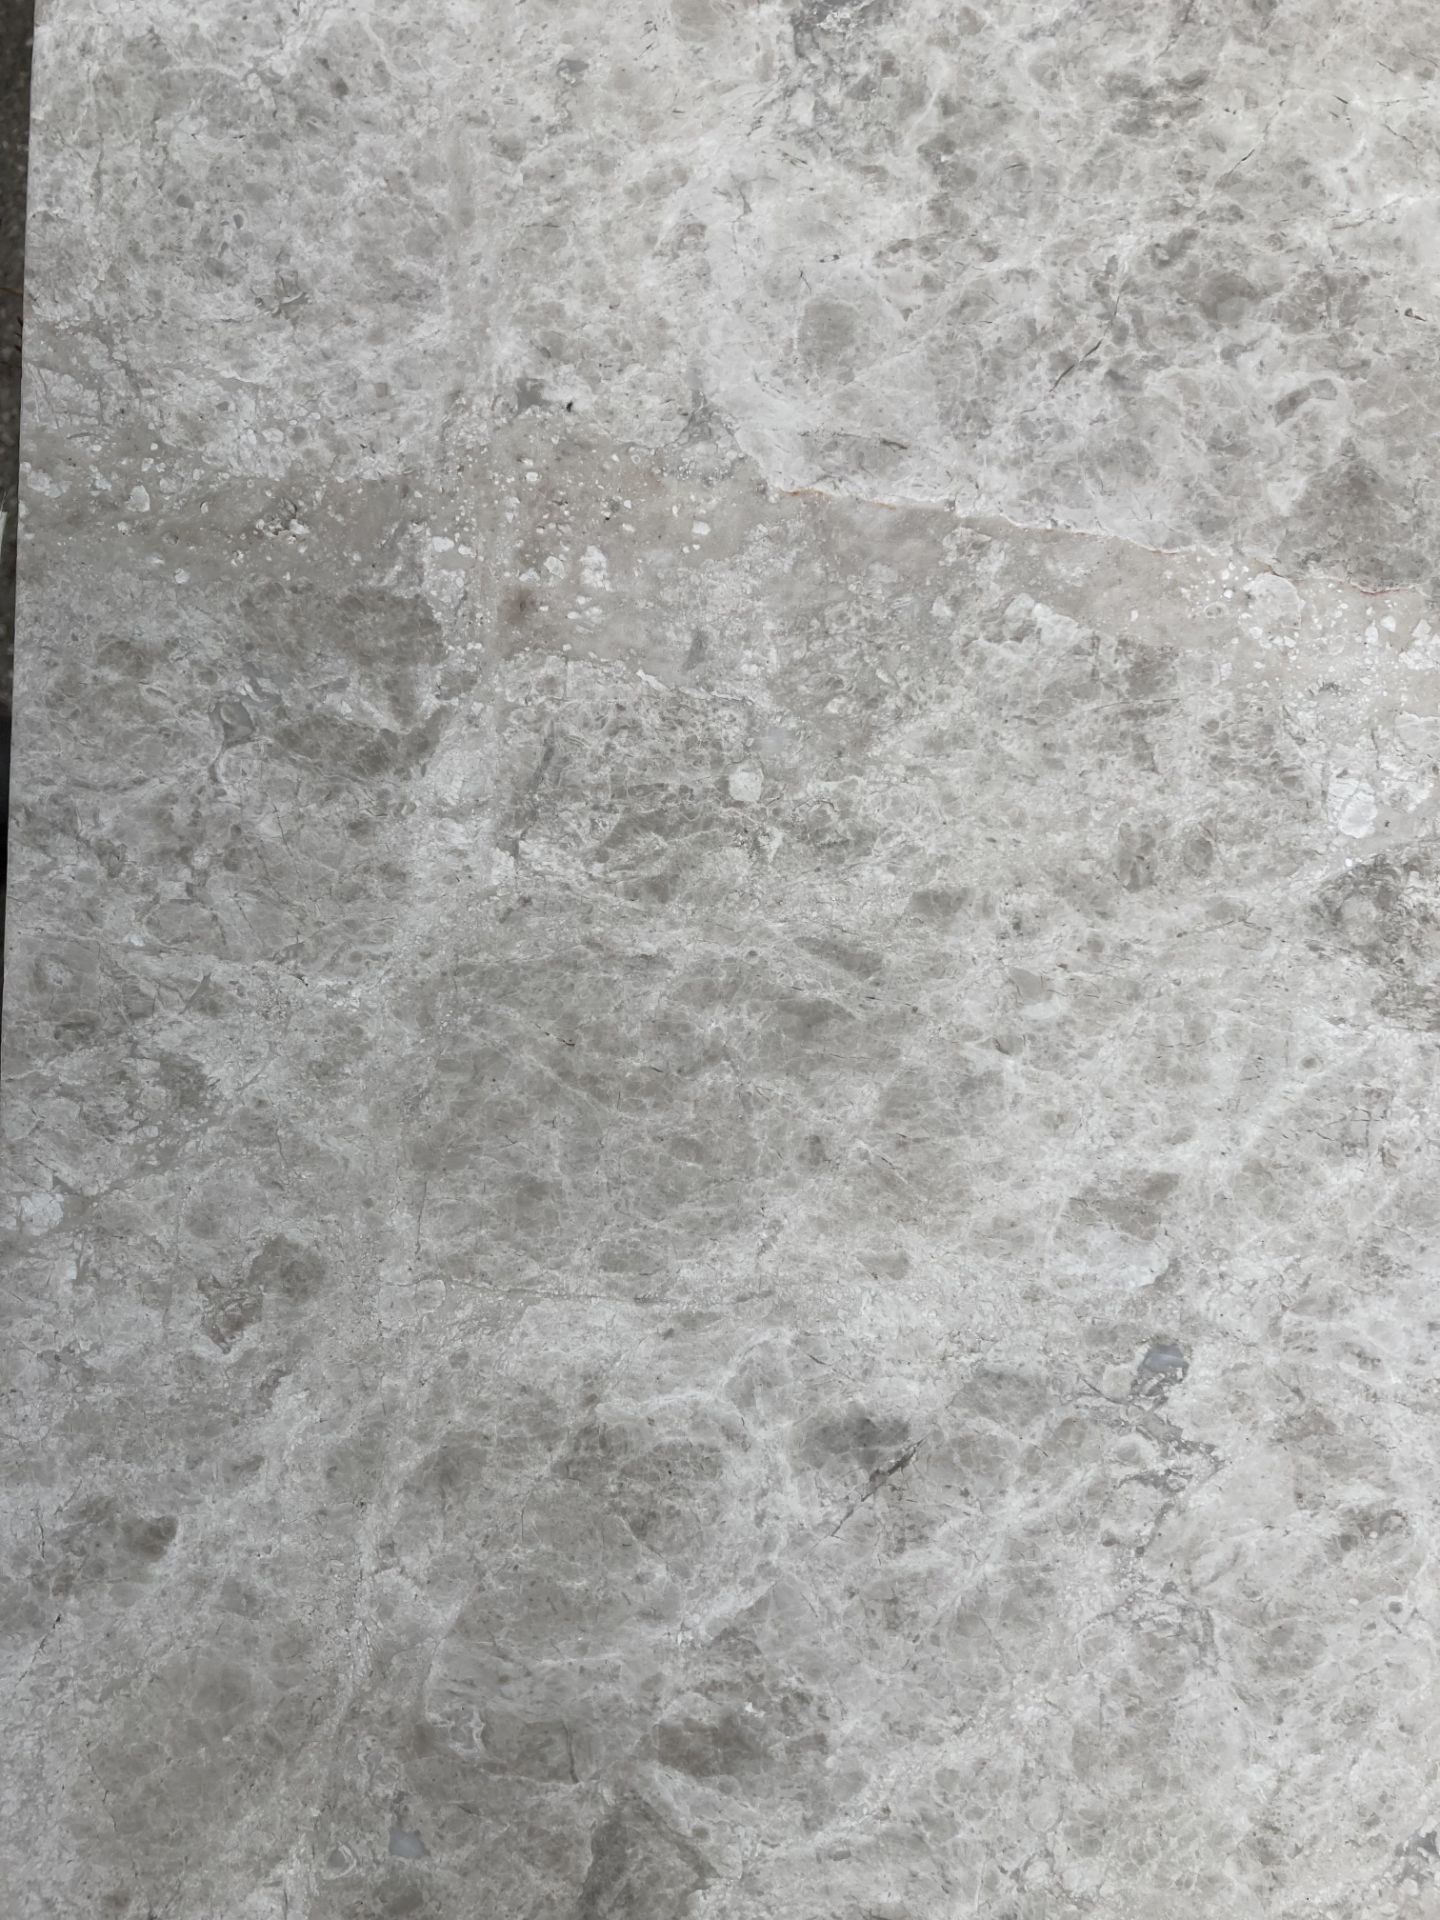 40 x packs of 4 marble tiles in Silver Emperador - 30 x 60 x 1. - Image 2 of 3